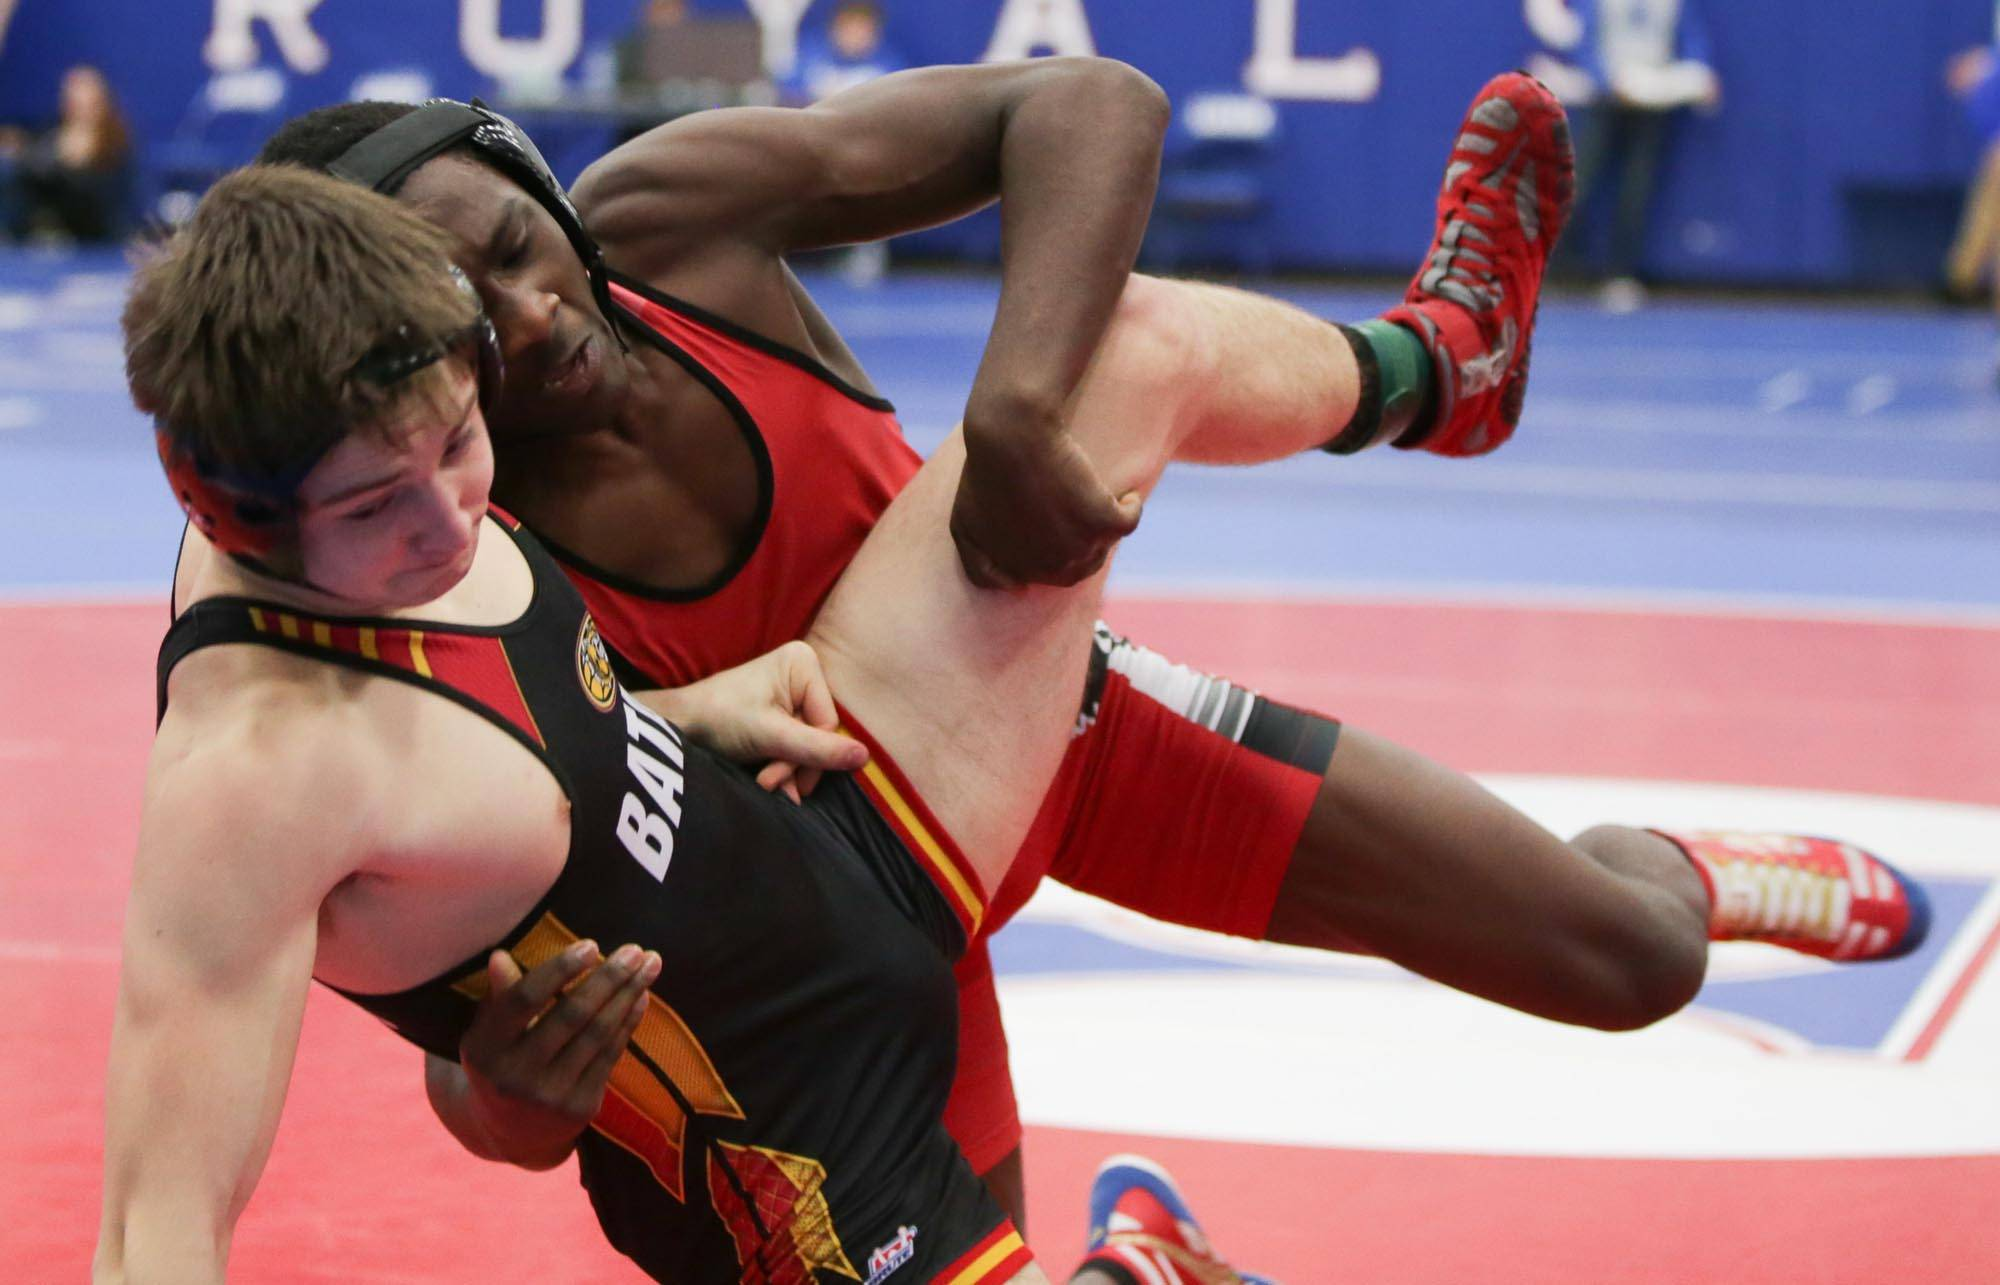 East Aurora's Matt Young shoots the legs of Batavia's Joe Posledni during their 160-pound final match at Larkin Saturday.